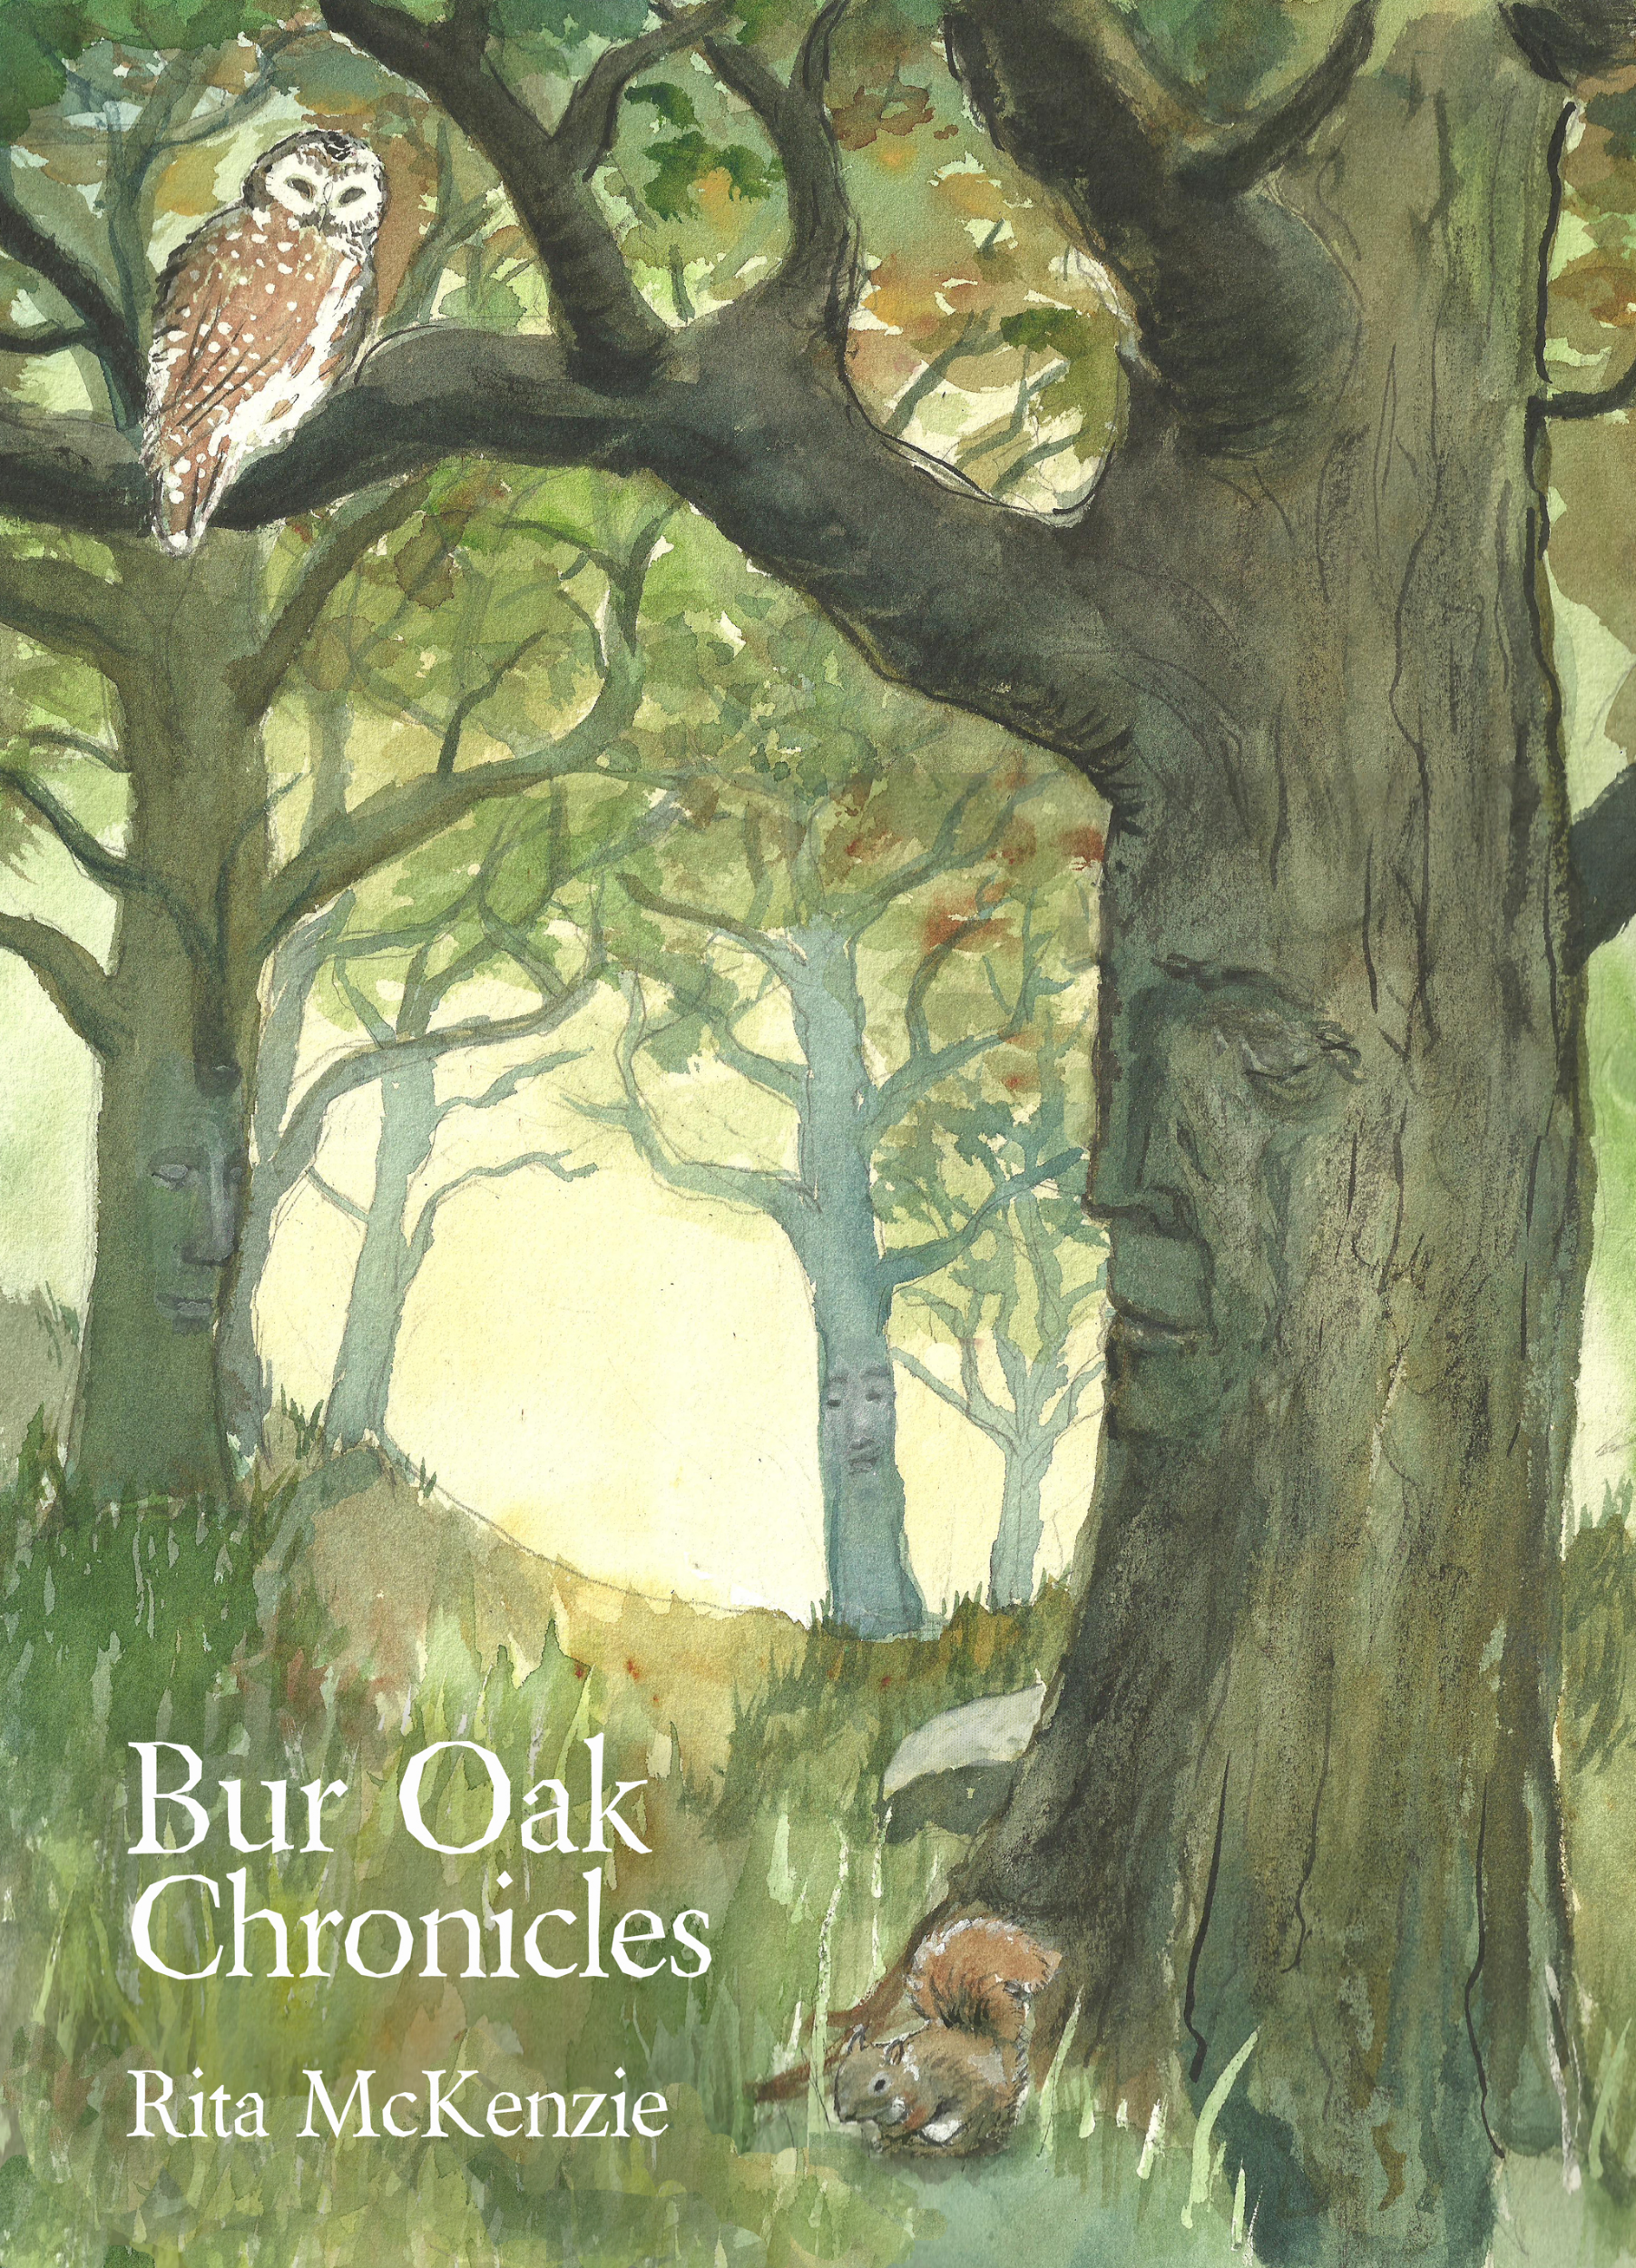 Cover design and illustration of Bur Oak Chronicles